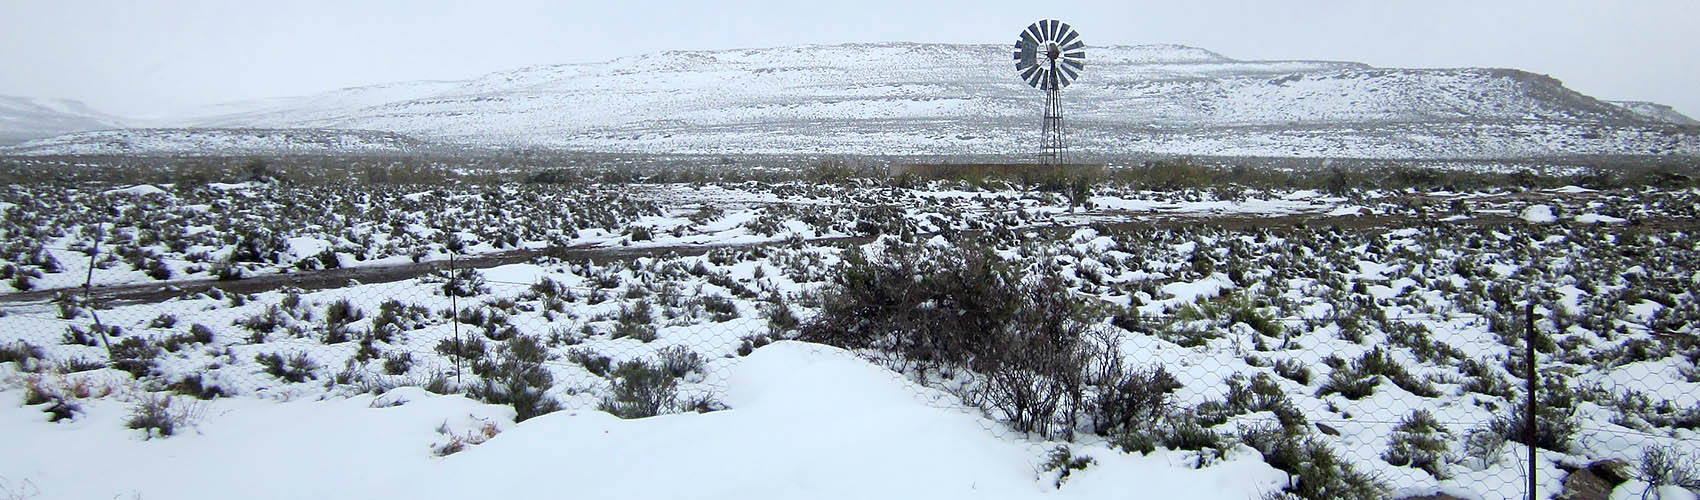 Where to See Snow in South Africa this Winter